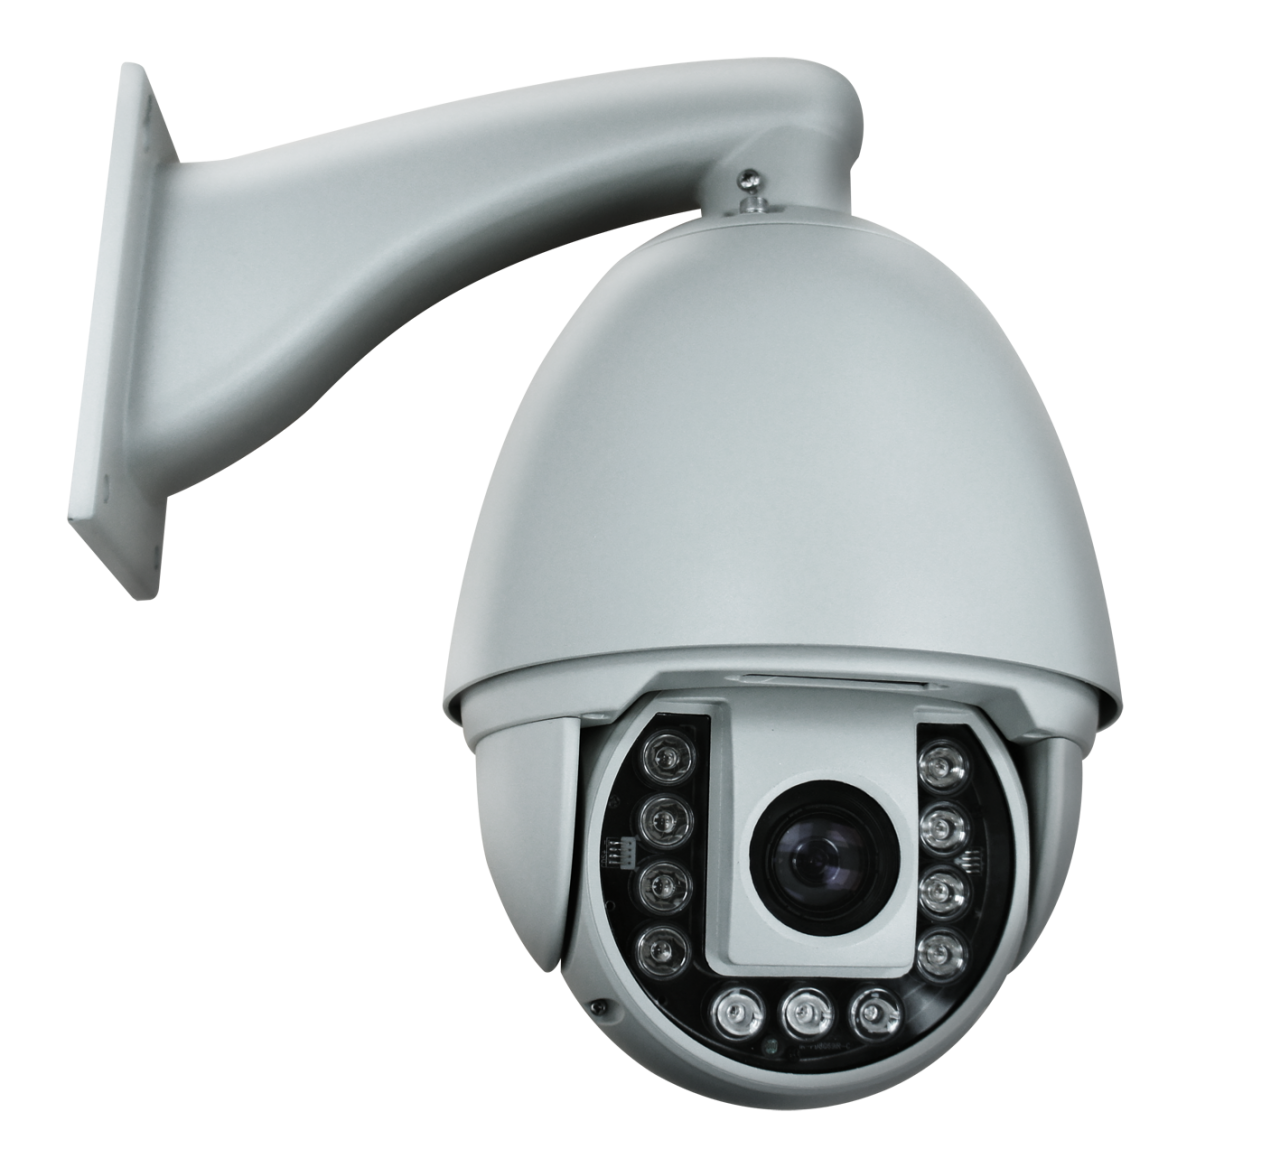 Cctv Products Infinize Corptech Pvt Ltd